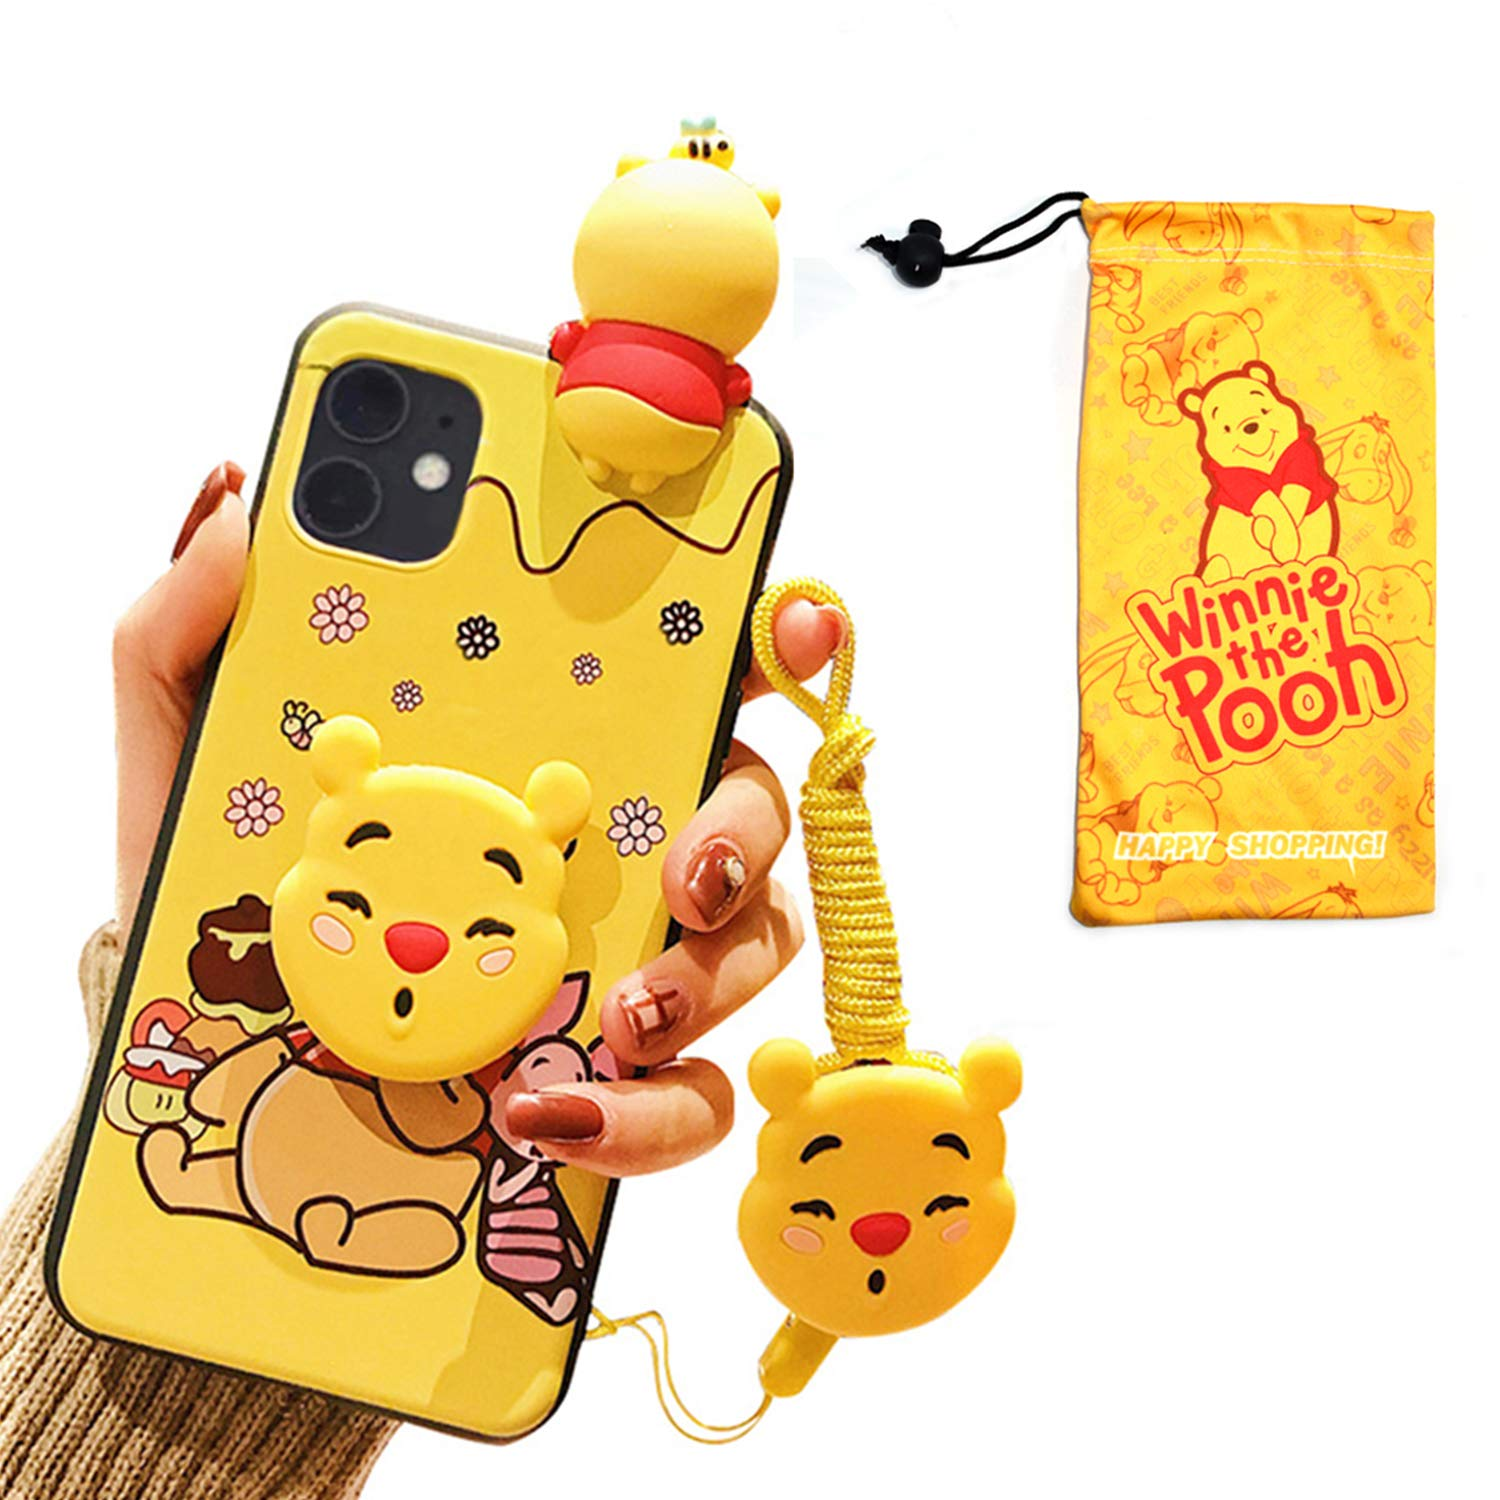 VANVENE Winnie Pooh Bear iPhone 11 Pro Max Case, Cute Cartoon 3D Animal Character Silicone Protective iPhone 11 Pro Max Cover Case for Kids Girl Boys Teens 6.5 Inch